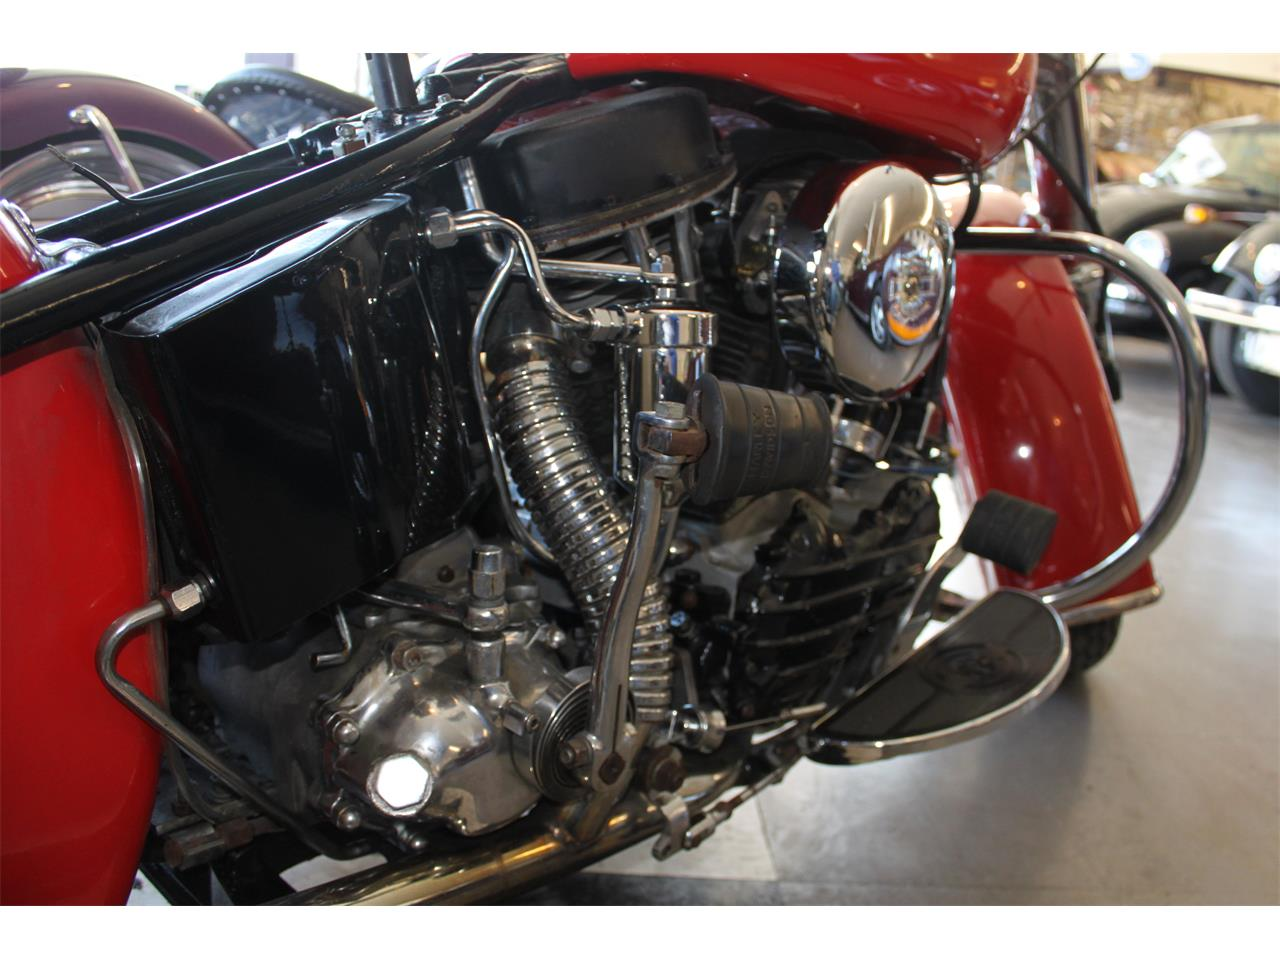 1950 Harley-Davidson Motorcycle for sale in Carnation, WA – photo 17